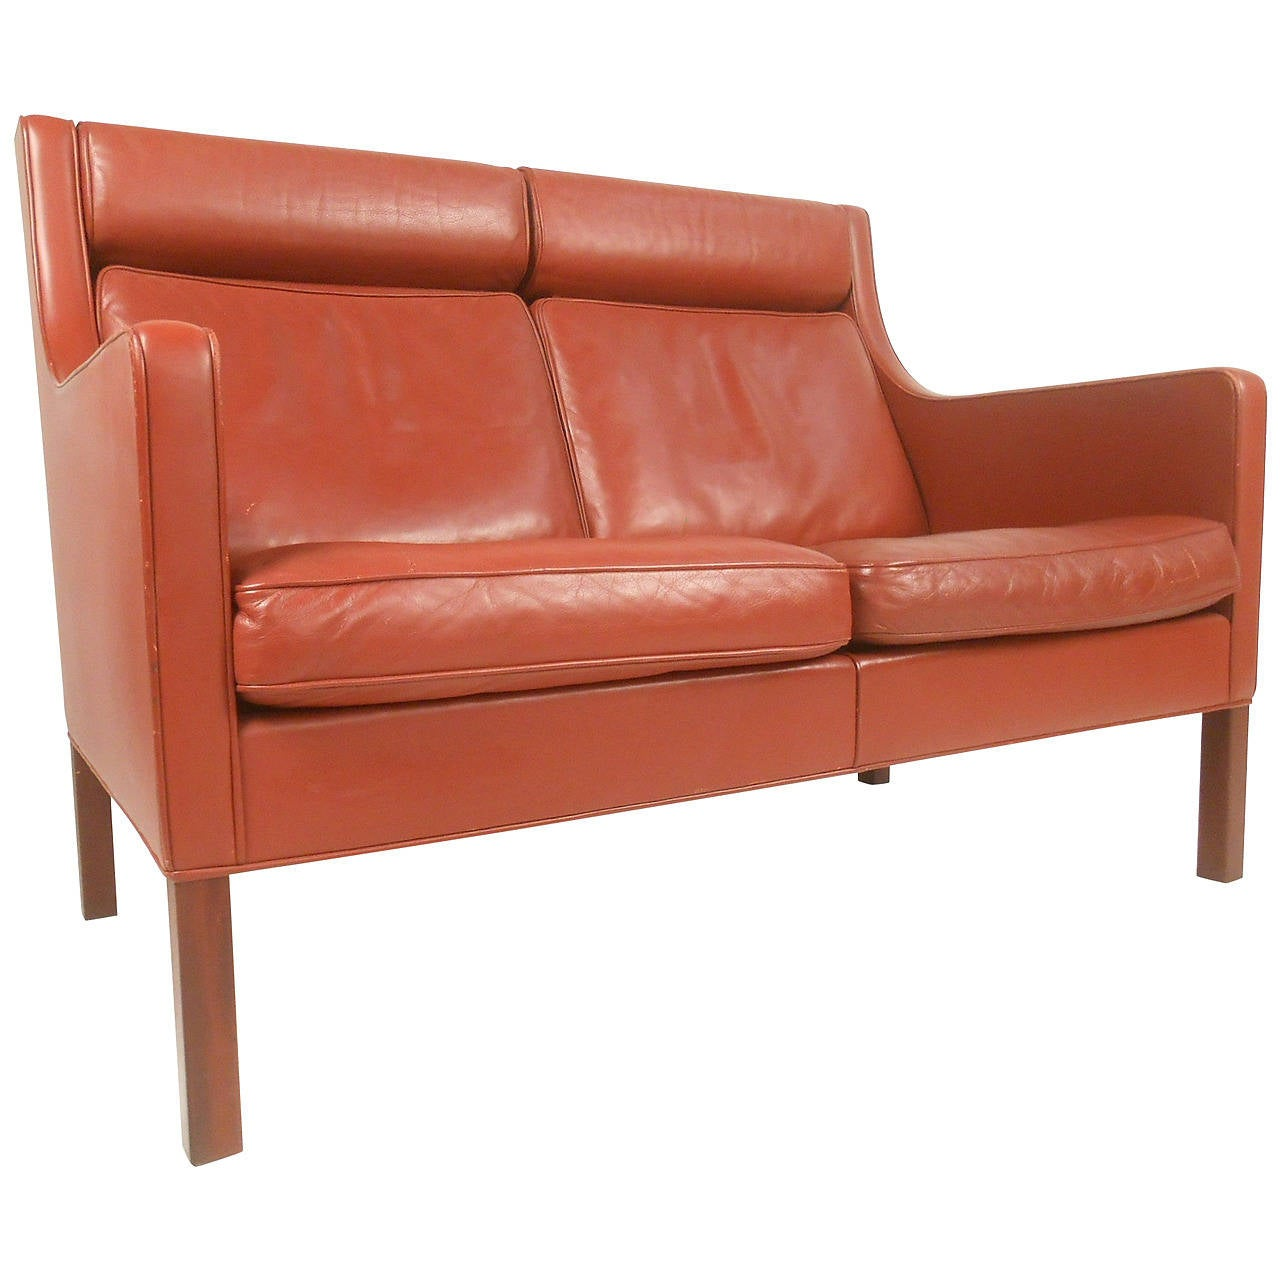 midcentury modern leather fredericia loveseat by borge mogensen 1